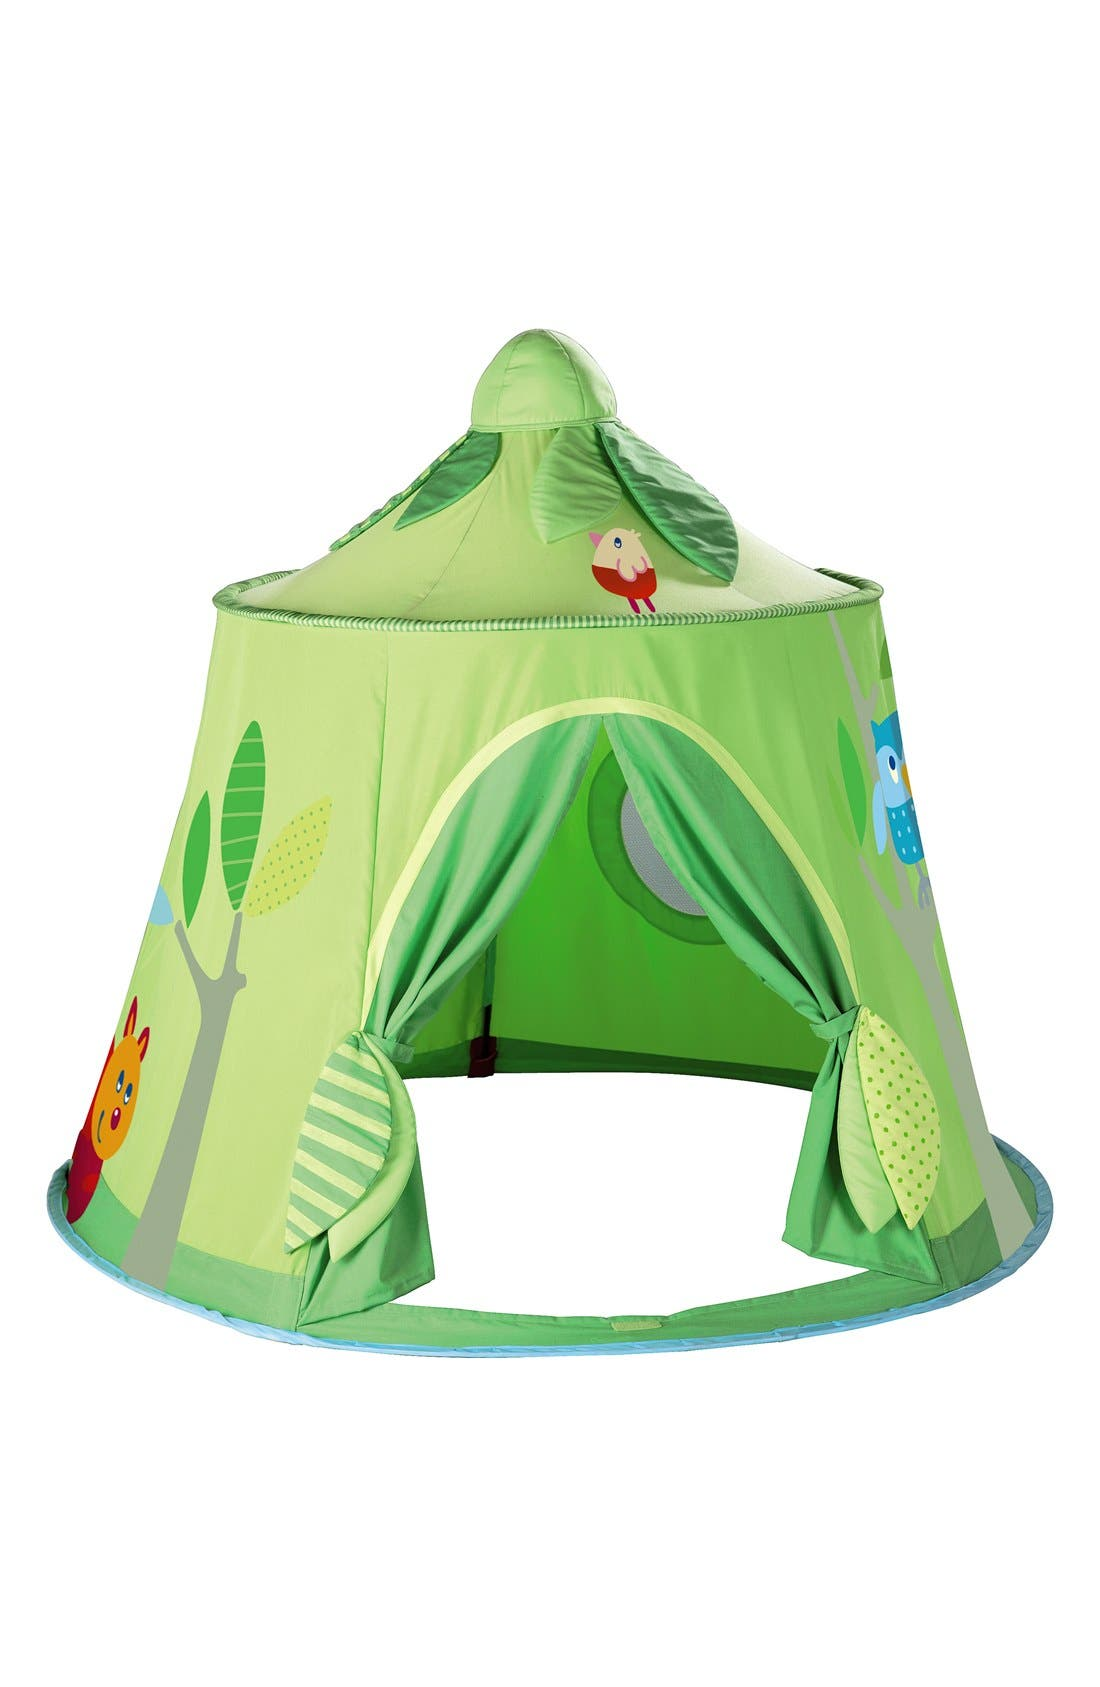 'Magic Forest' Play Tent,                             Main thumbnail 1, color,                             Green